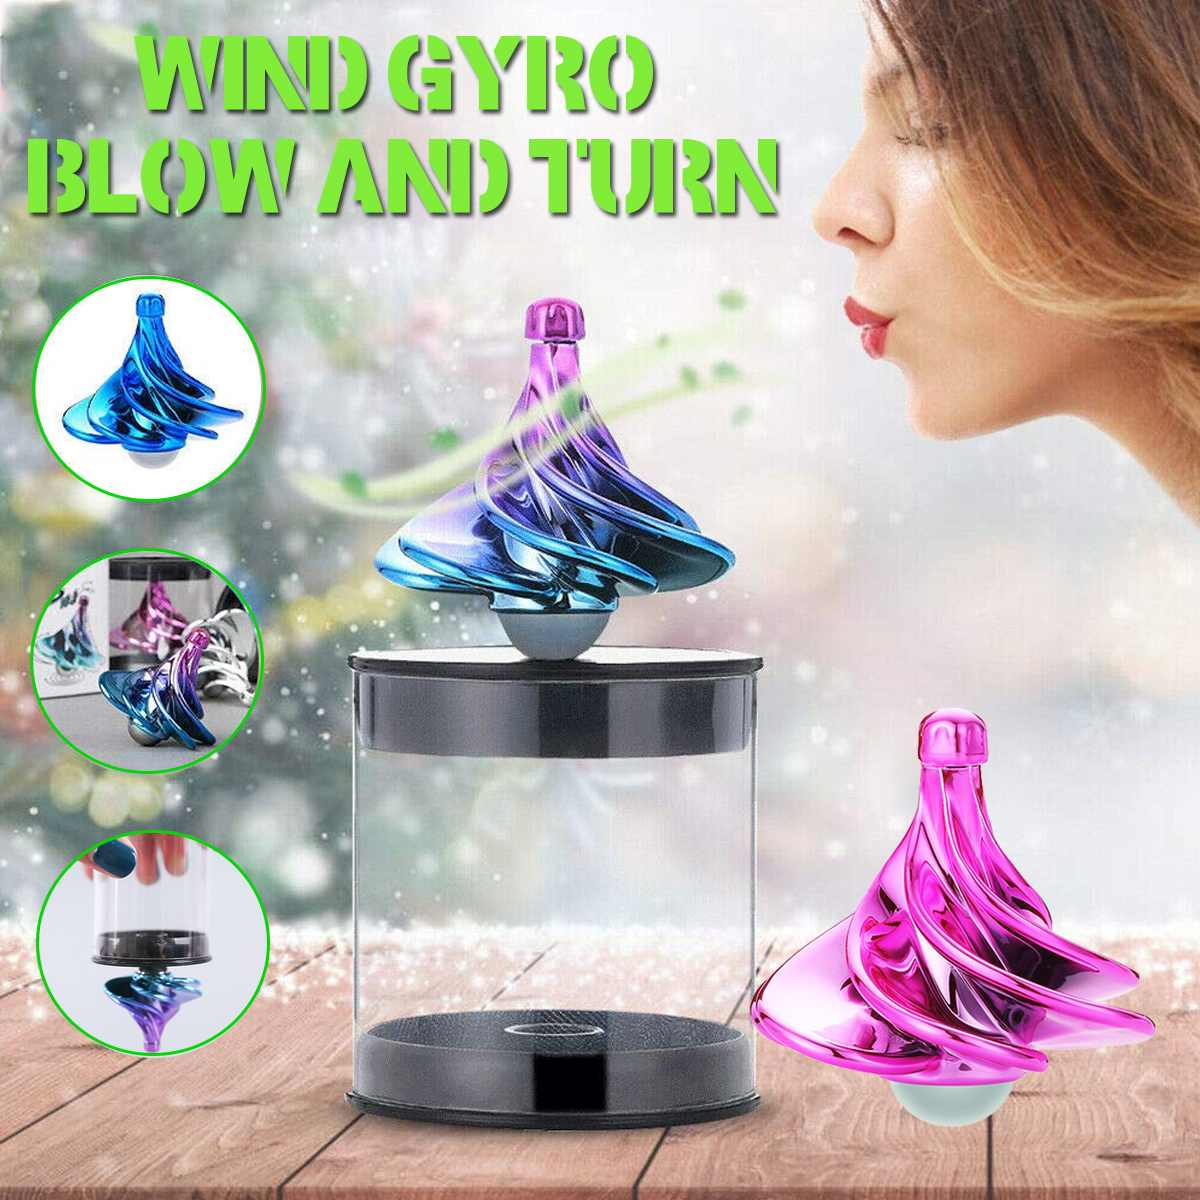 Wind Fidget Gyro Spinning Top For Children Finger Gyroscope Game Wind Blow Turn  Gyro Mini Spinner Stress Relief Fun Toy Gift